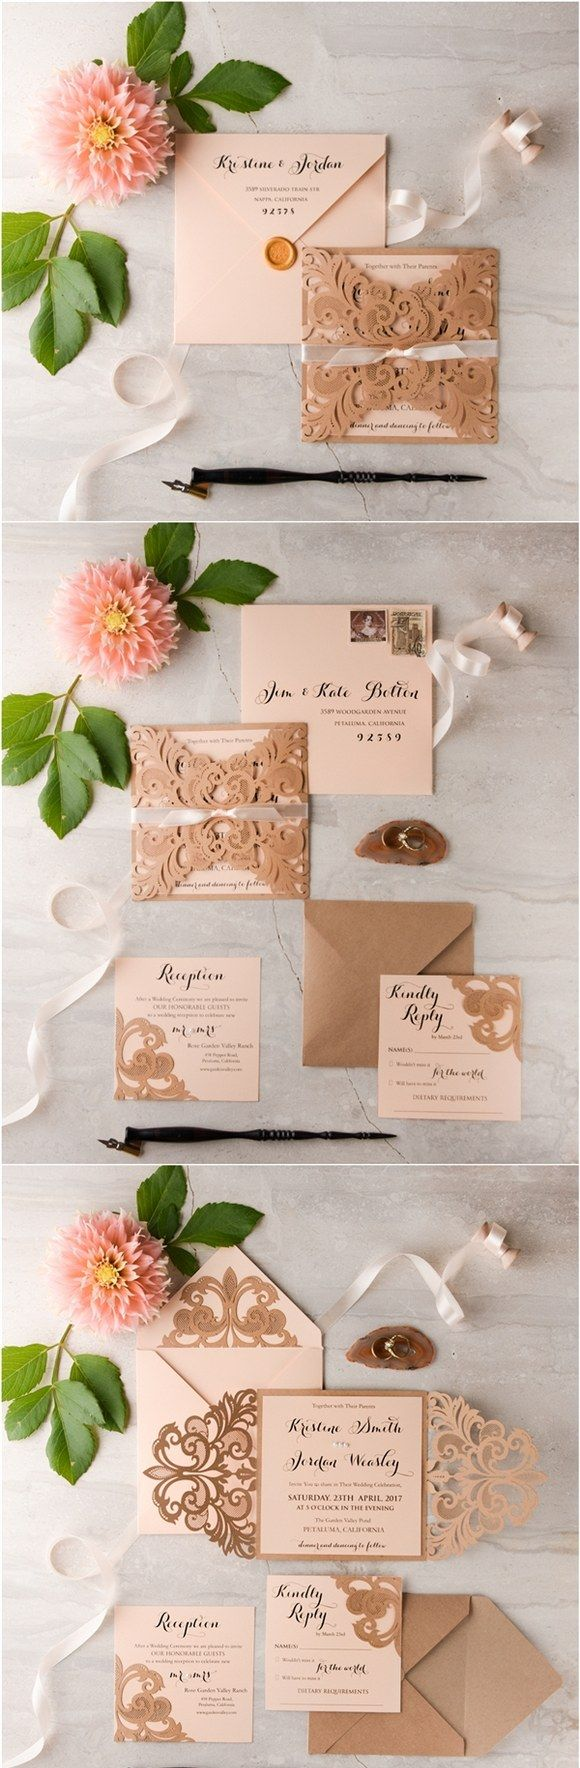 Rustic Peach Laser Cut Wedding Invitations #rusticwedding #countrywedding…